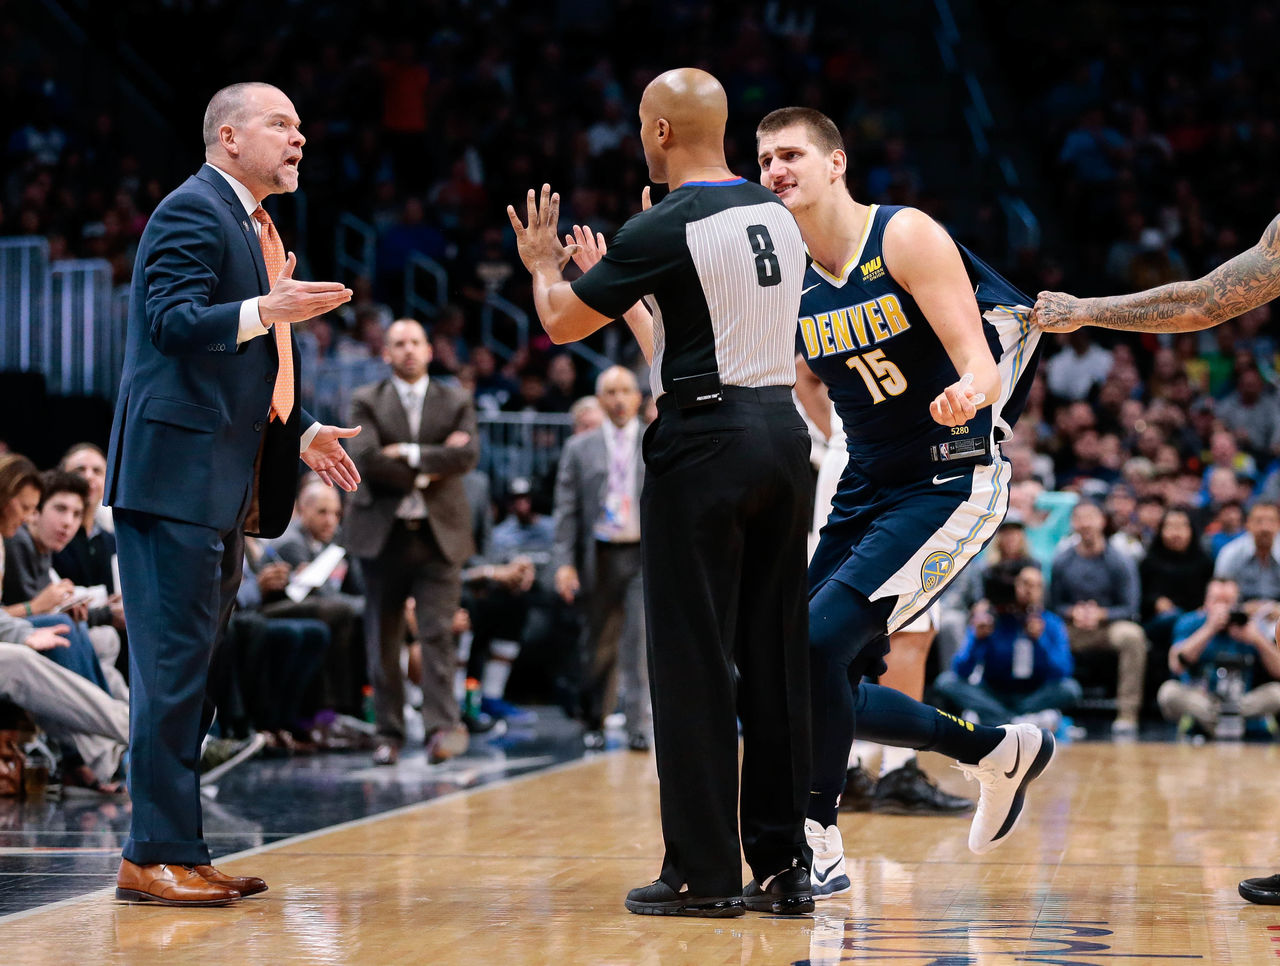 Cropped 2017 11 12t032227z 445395502 nocid rtrmadp 3 nba orlando magic at denver nuggets